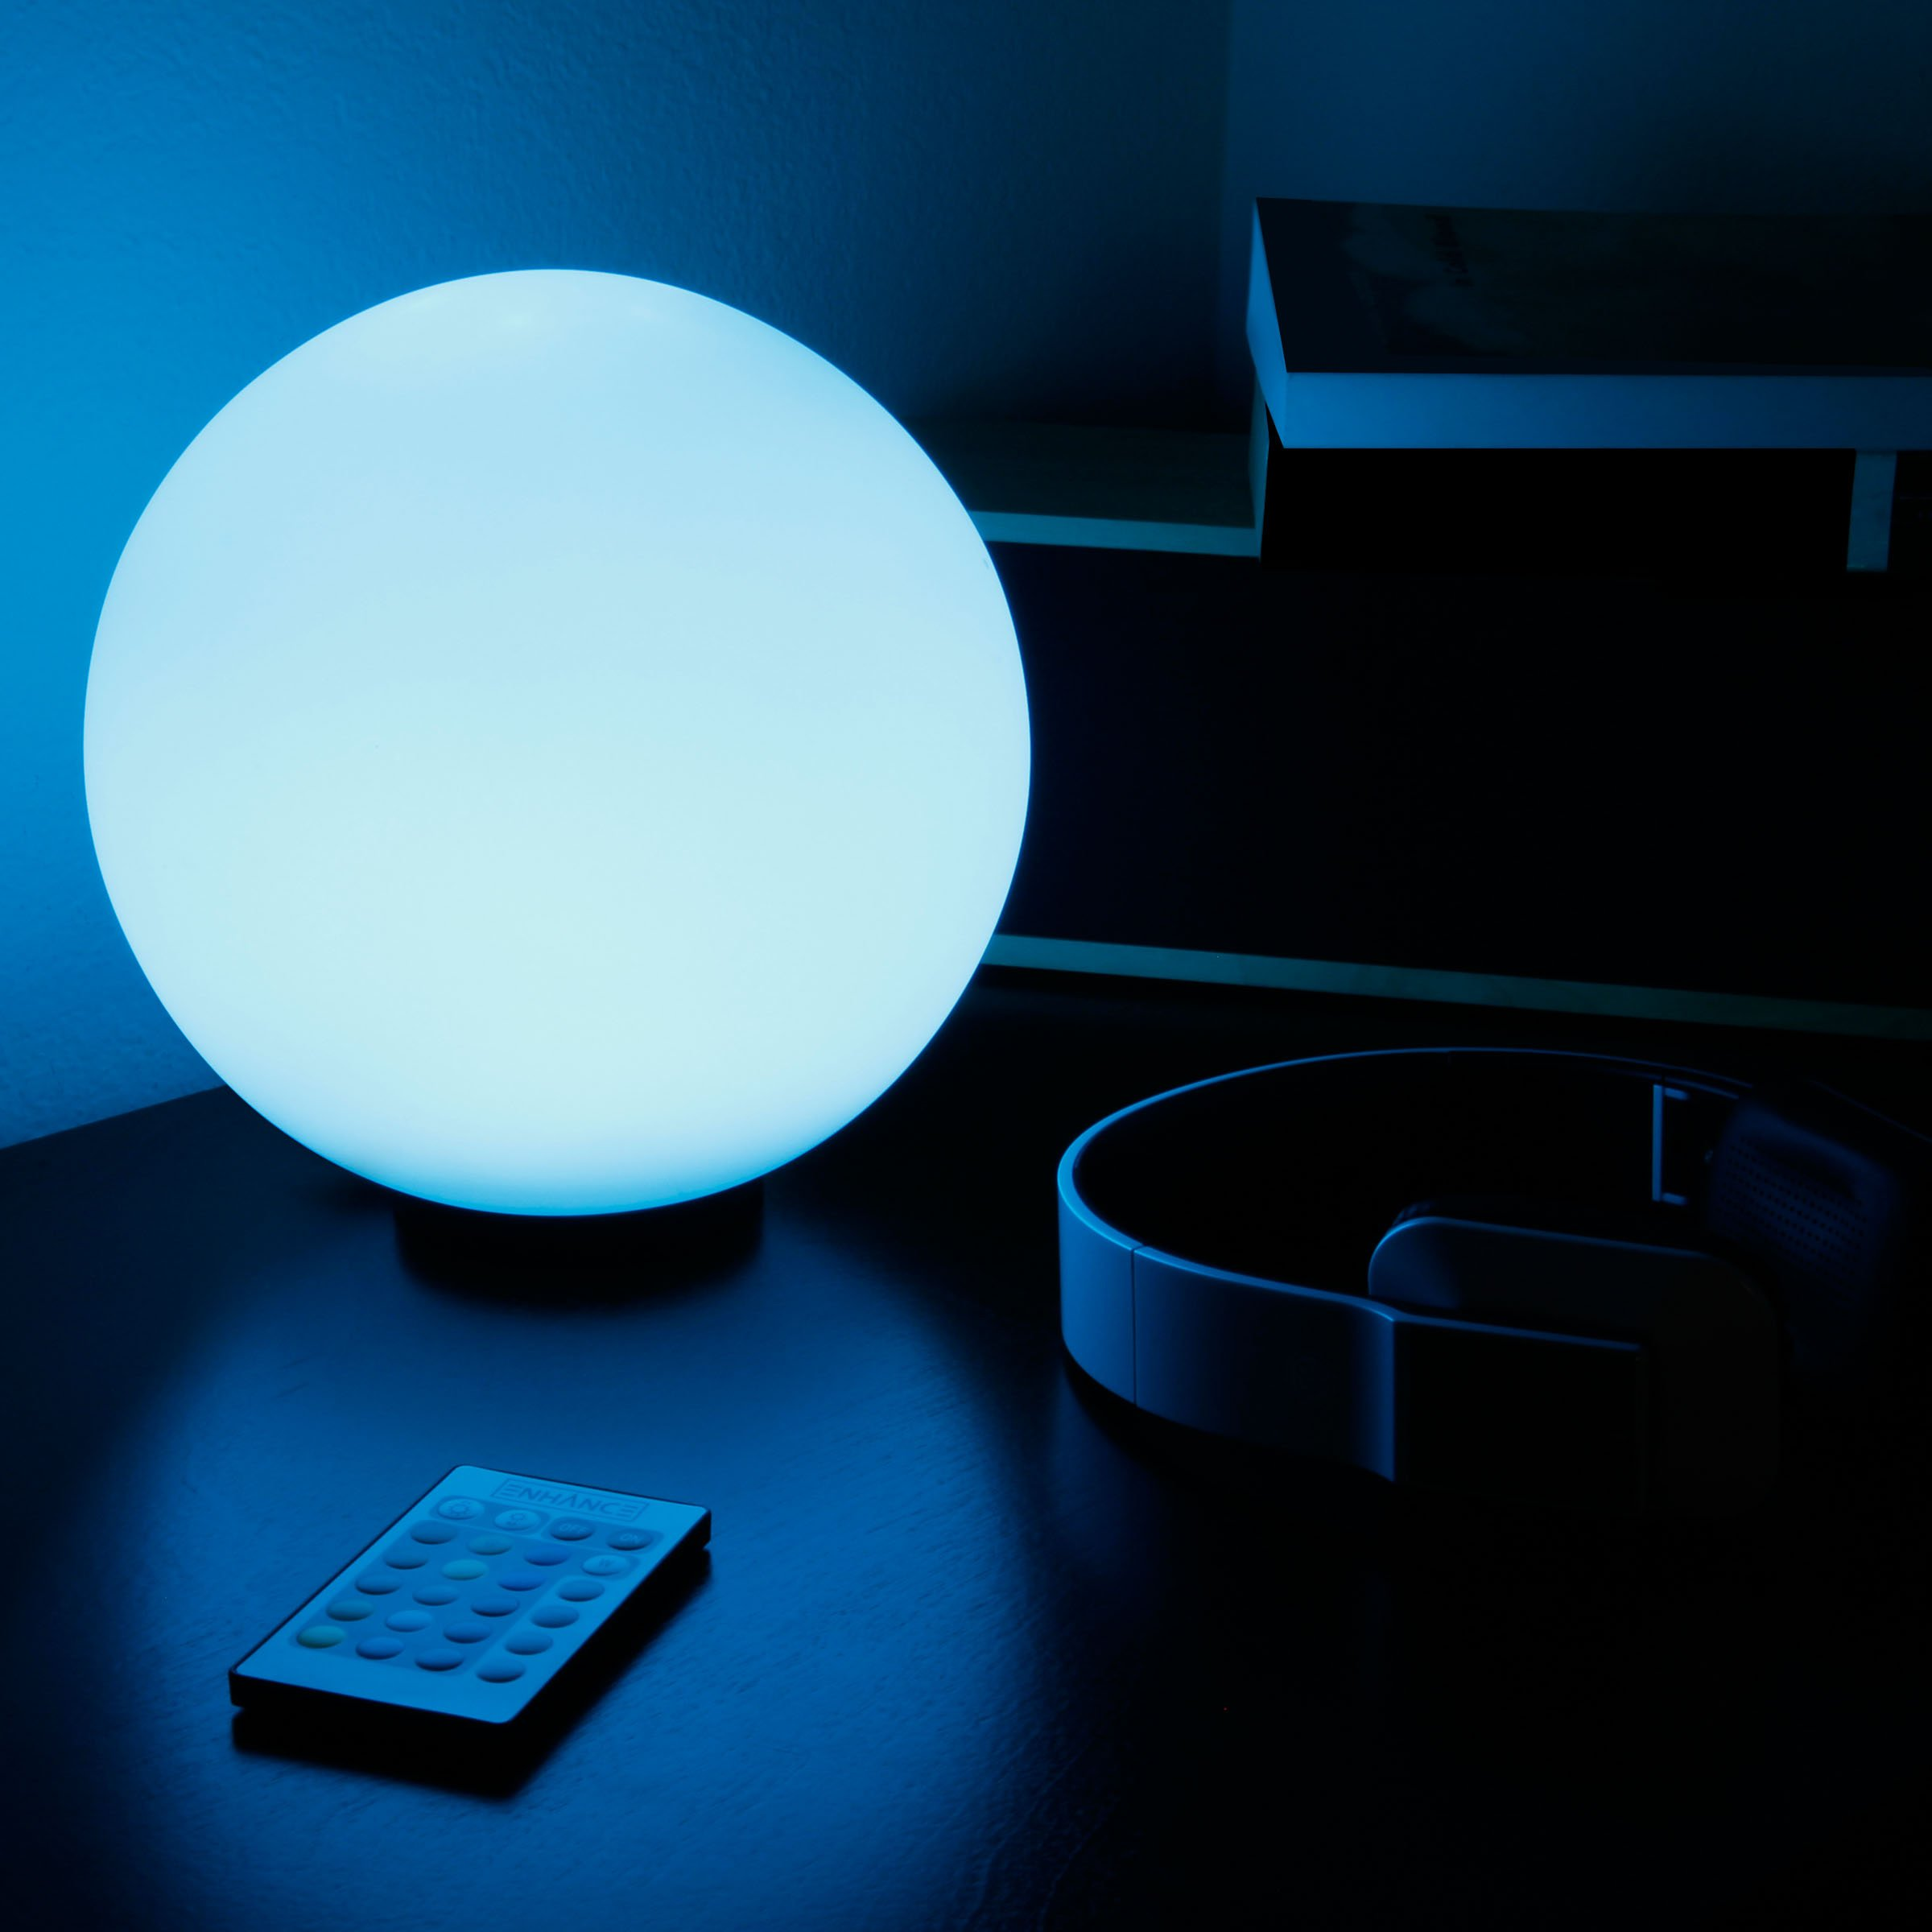 ENHANCE LED Globe Night Light Ambient Color Changing Premium Glass Mood Lamp with Remote Control - 7.9 inch 4 Lighting Modes & Battery or AC Adapter Power - Perfect for Children & Adults by ENHANCE (Image #2)